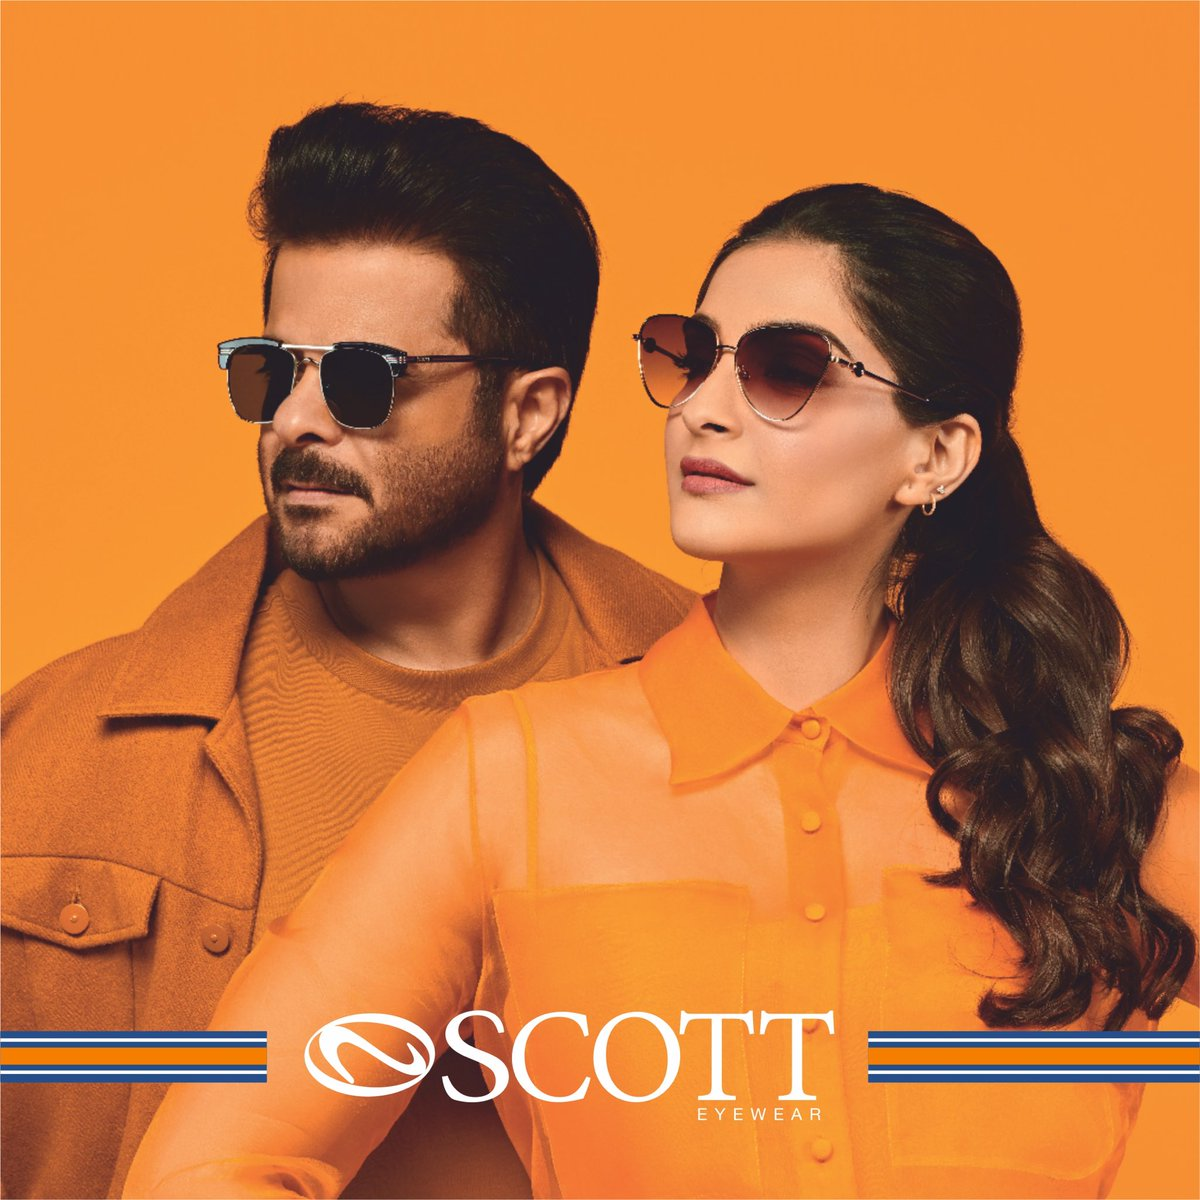 With a pinch of glam, a touch of charm and a dash of chic my Signature Collection is looking fab, right here at Scott.  #scotteyewearxAKSK #AnilKapoor #SonamKapoor #SignatureLine #AKSK #signaturestyle #ss20 #statementstyle #style #sunglassfashion #fashion #sunglasses #scottlove